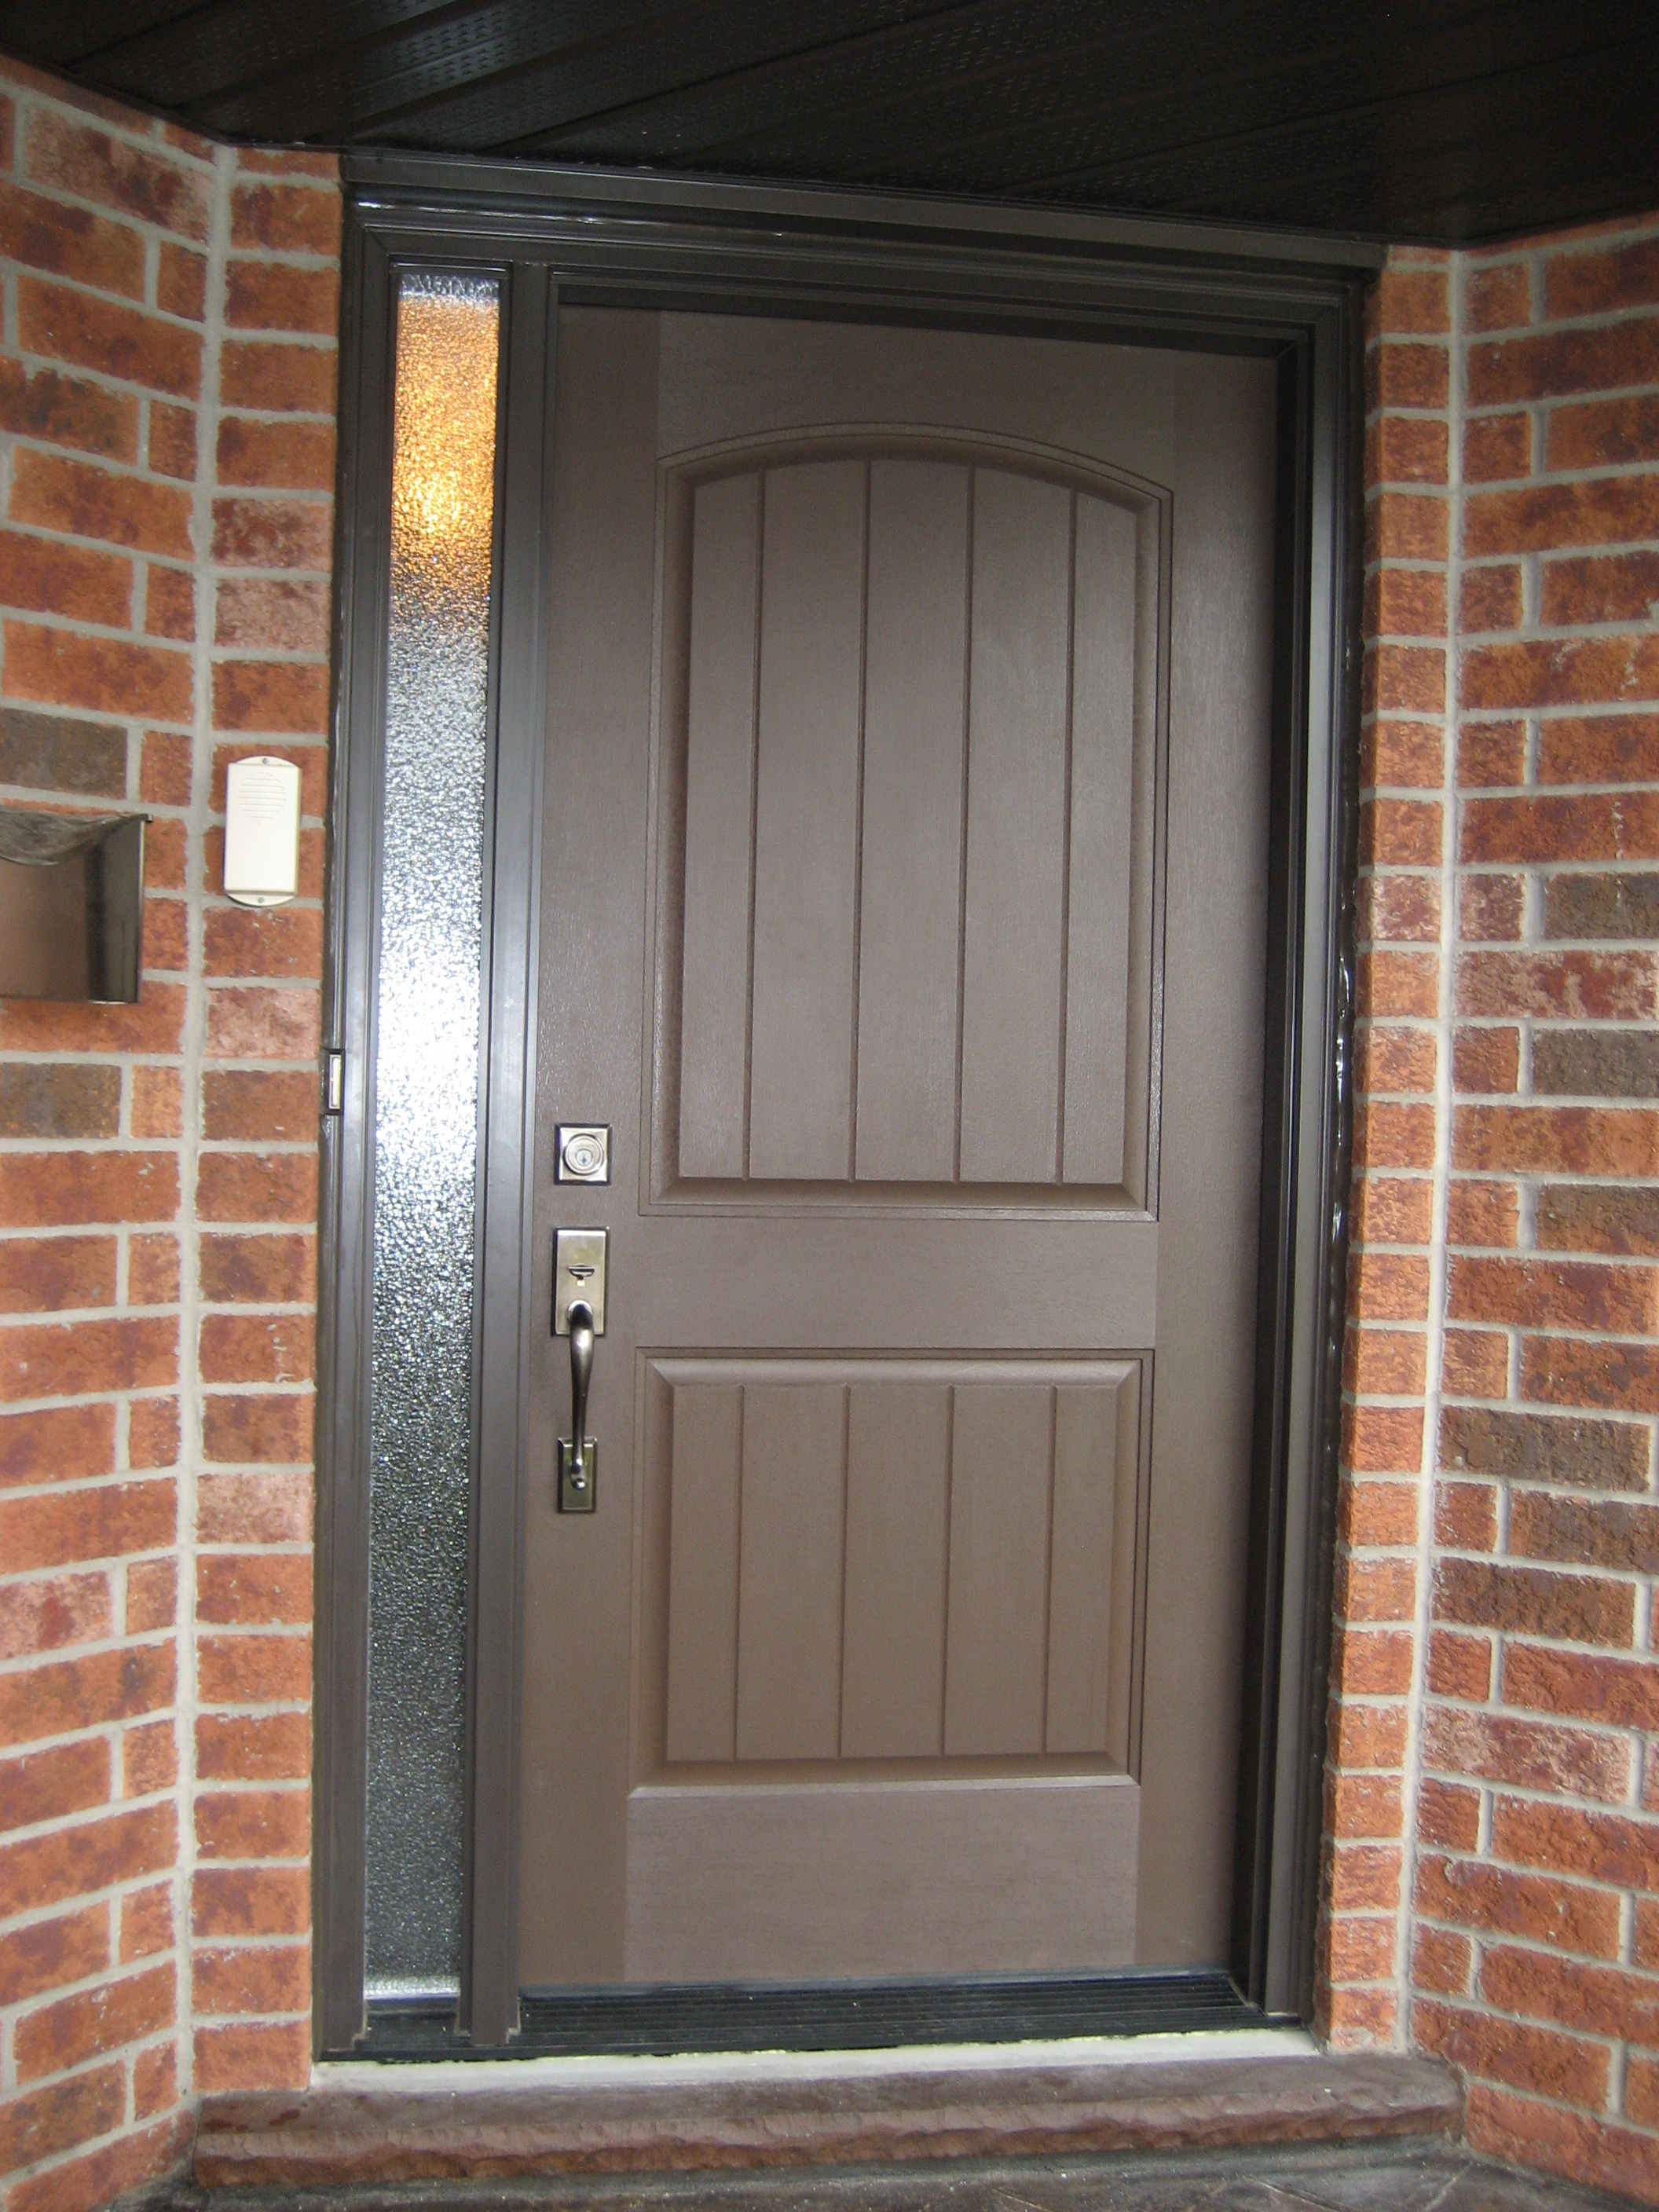 installed category side and frosted with doors windows door fiberglass in wood rustic lites page toronto richmondhill entry front grain woodgrain portfolio by exterior